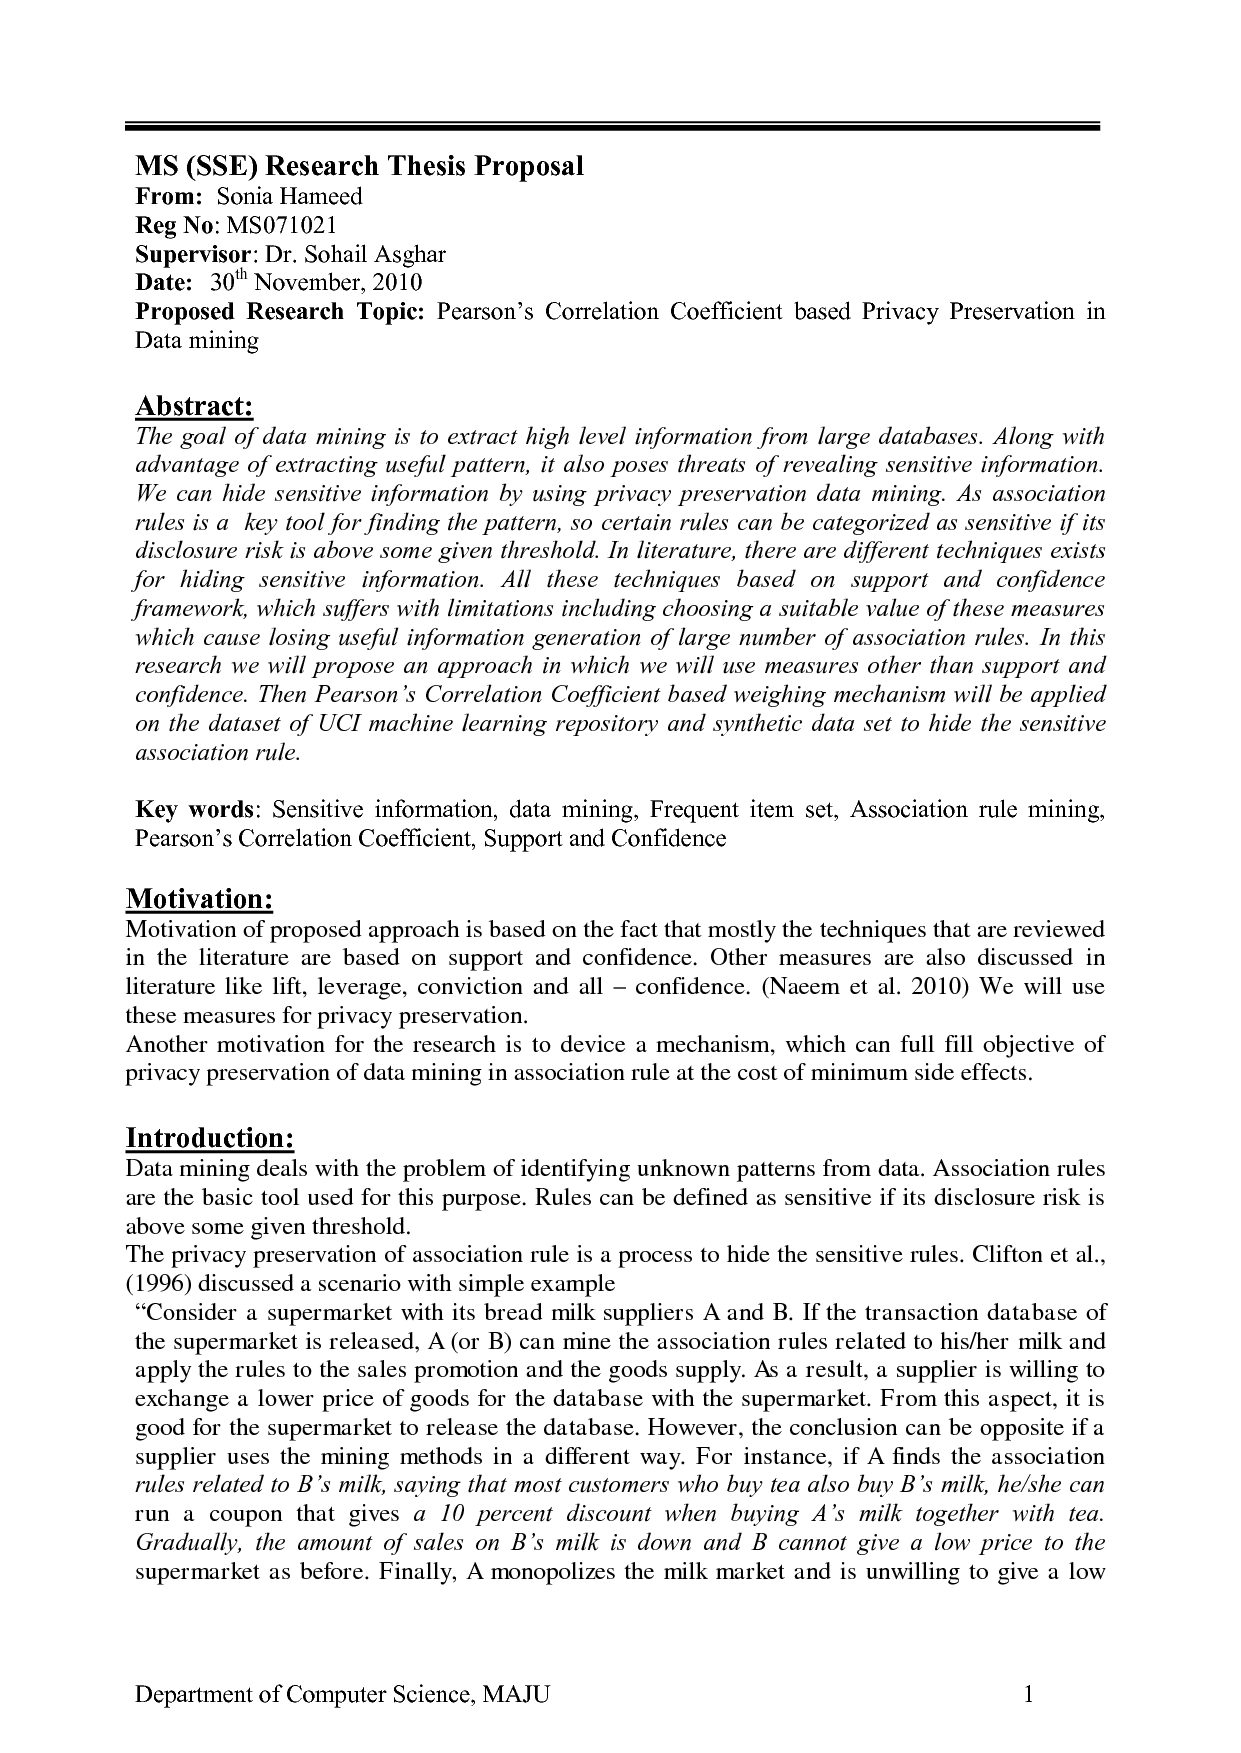 Phd thesis proposal sample social science